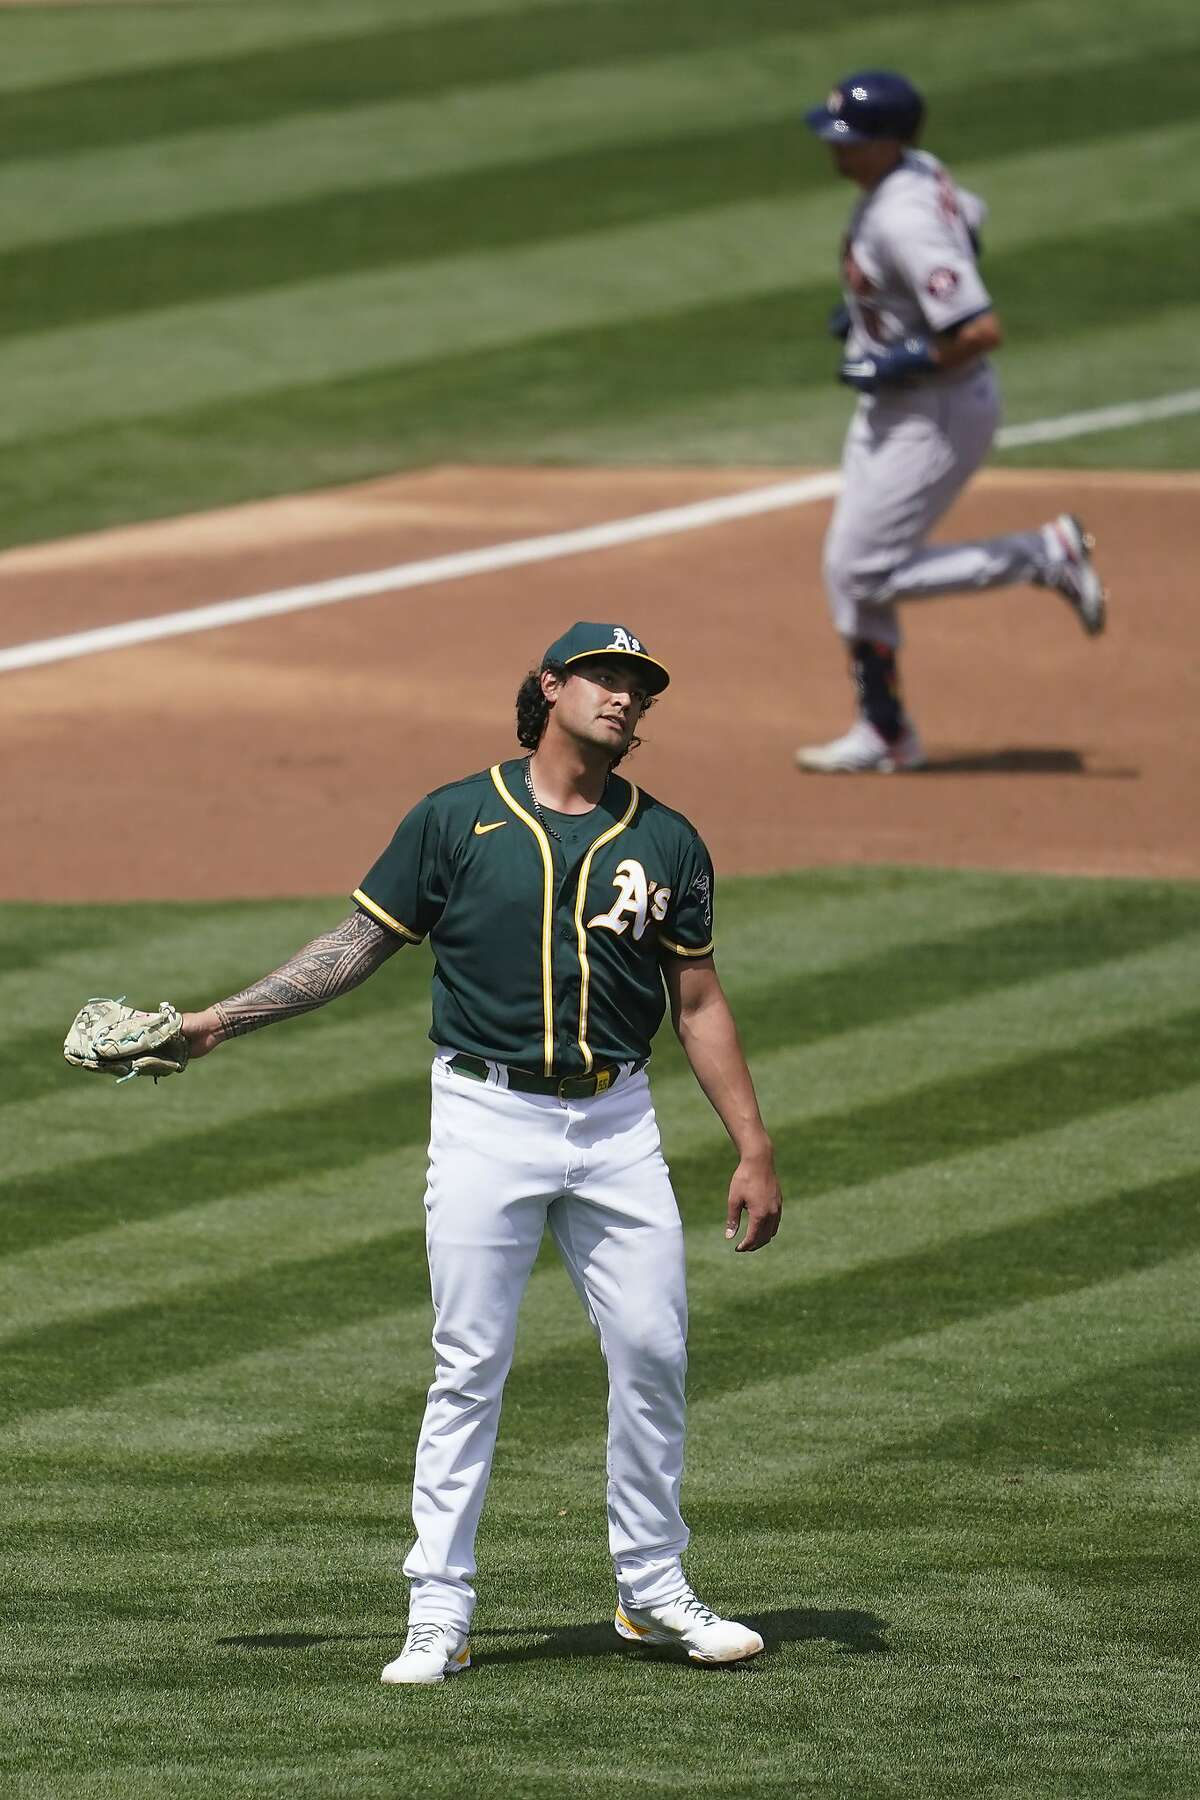 Houston Astros' Jason Castro, top, rounds the bases after hitting a two-run home run off Oakland Athletics pitcher Sean Manaea, bottom, during the second inning of a baseball game in Oakland, Calif., Sunday, April 4, 2021.